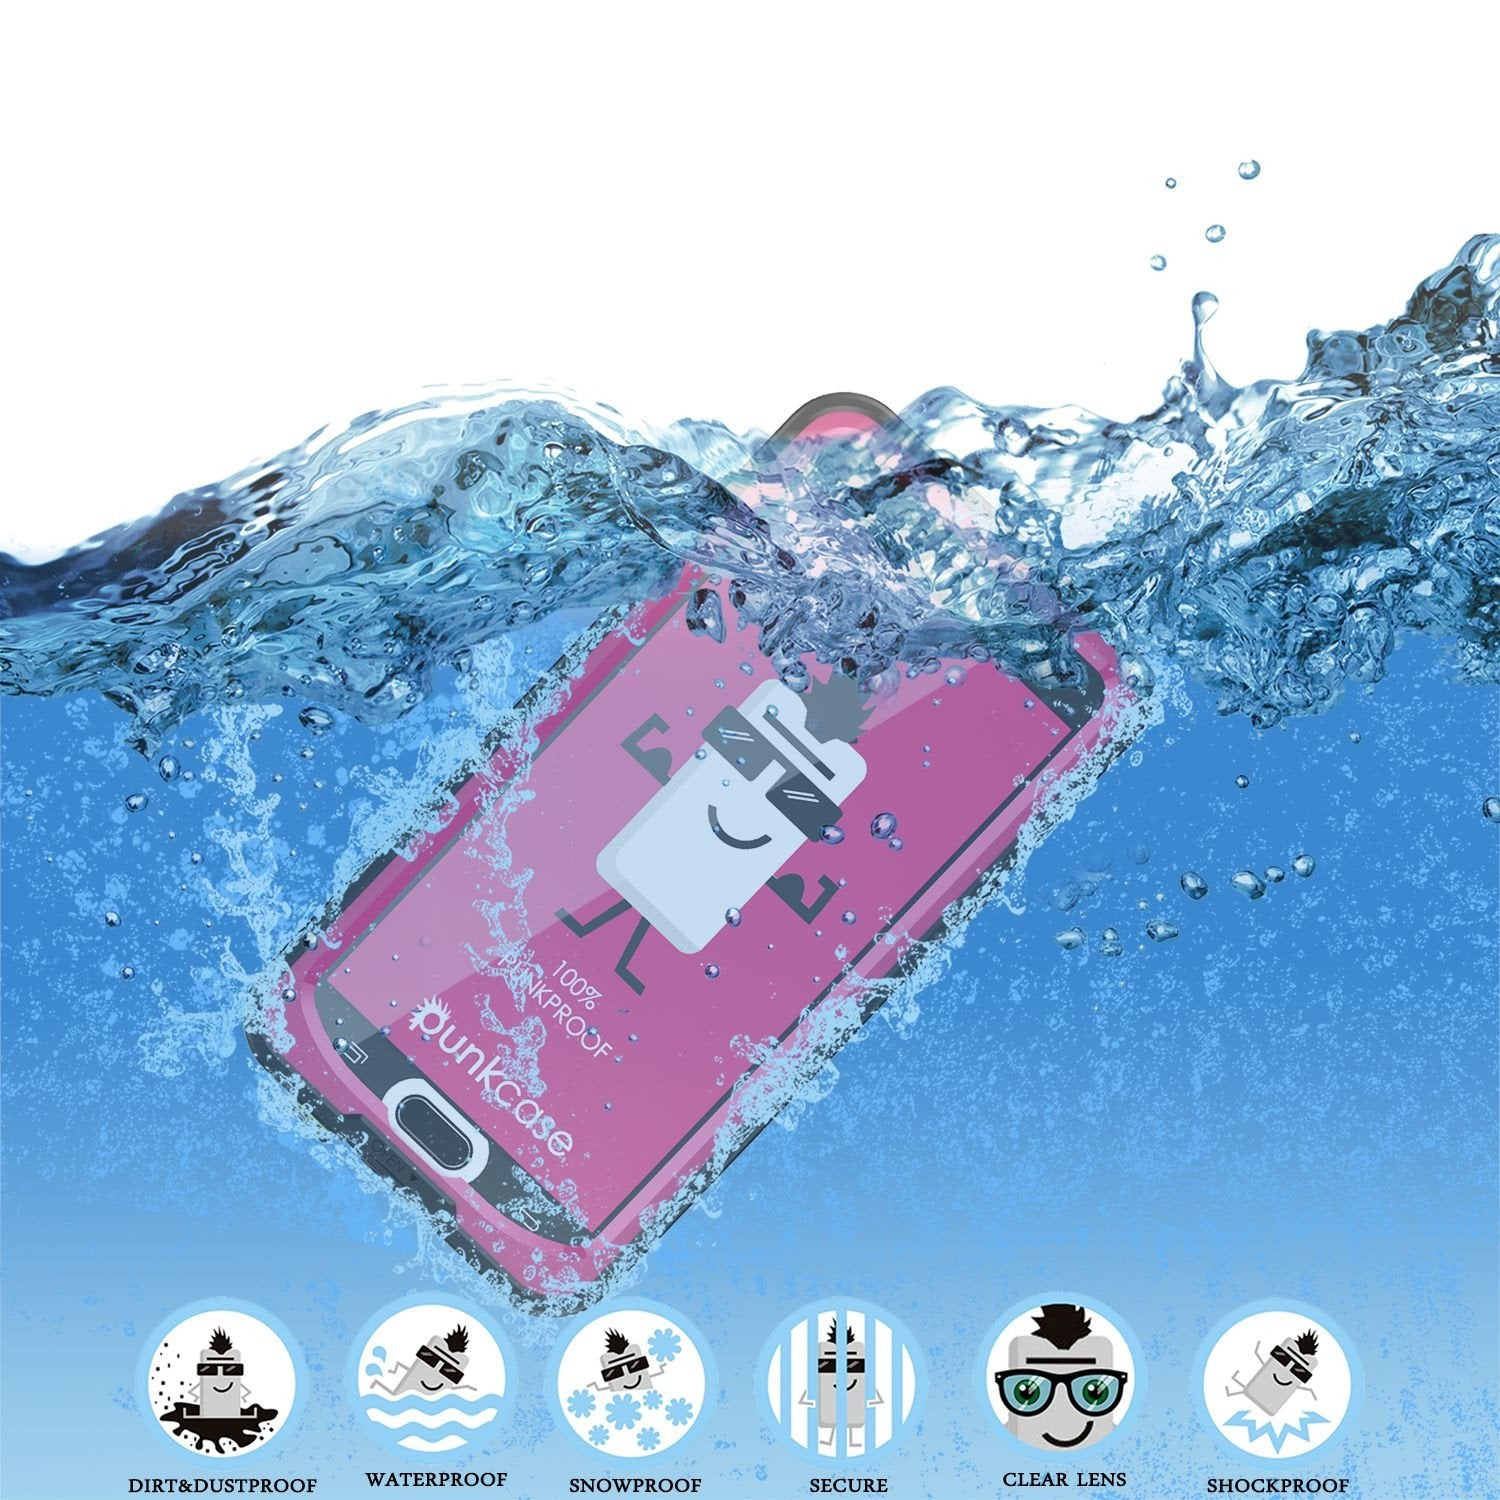 Galaxy Note 5 Waterproof Case, Punkcase StudStar Pink Shock/Dirt/Snow Proof | Lifetime Warranty